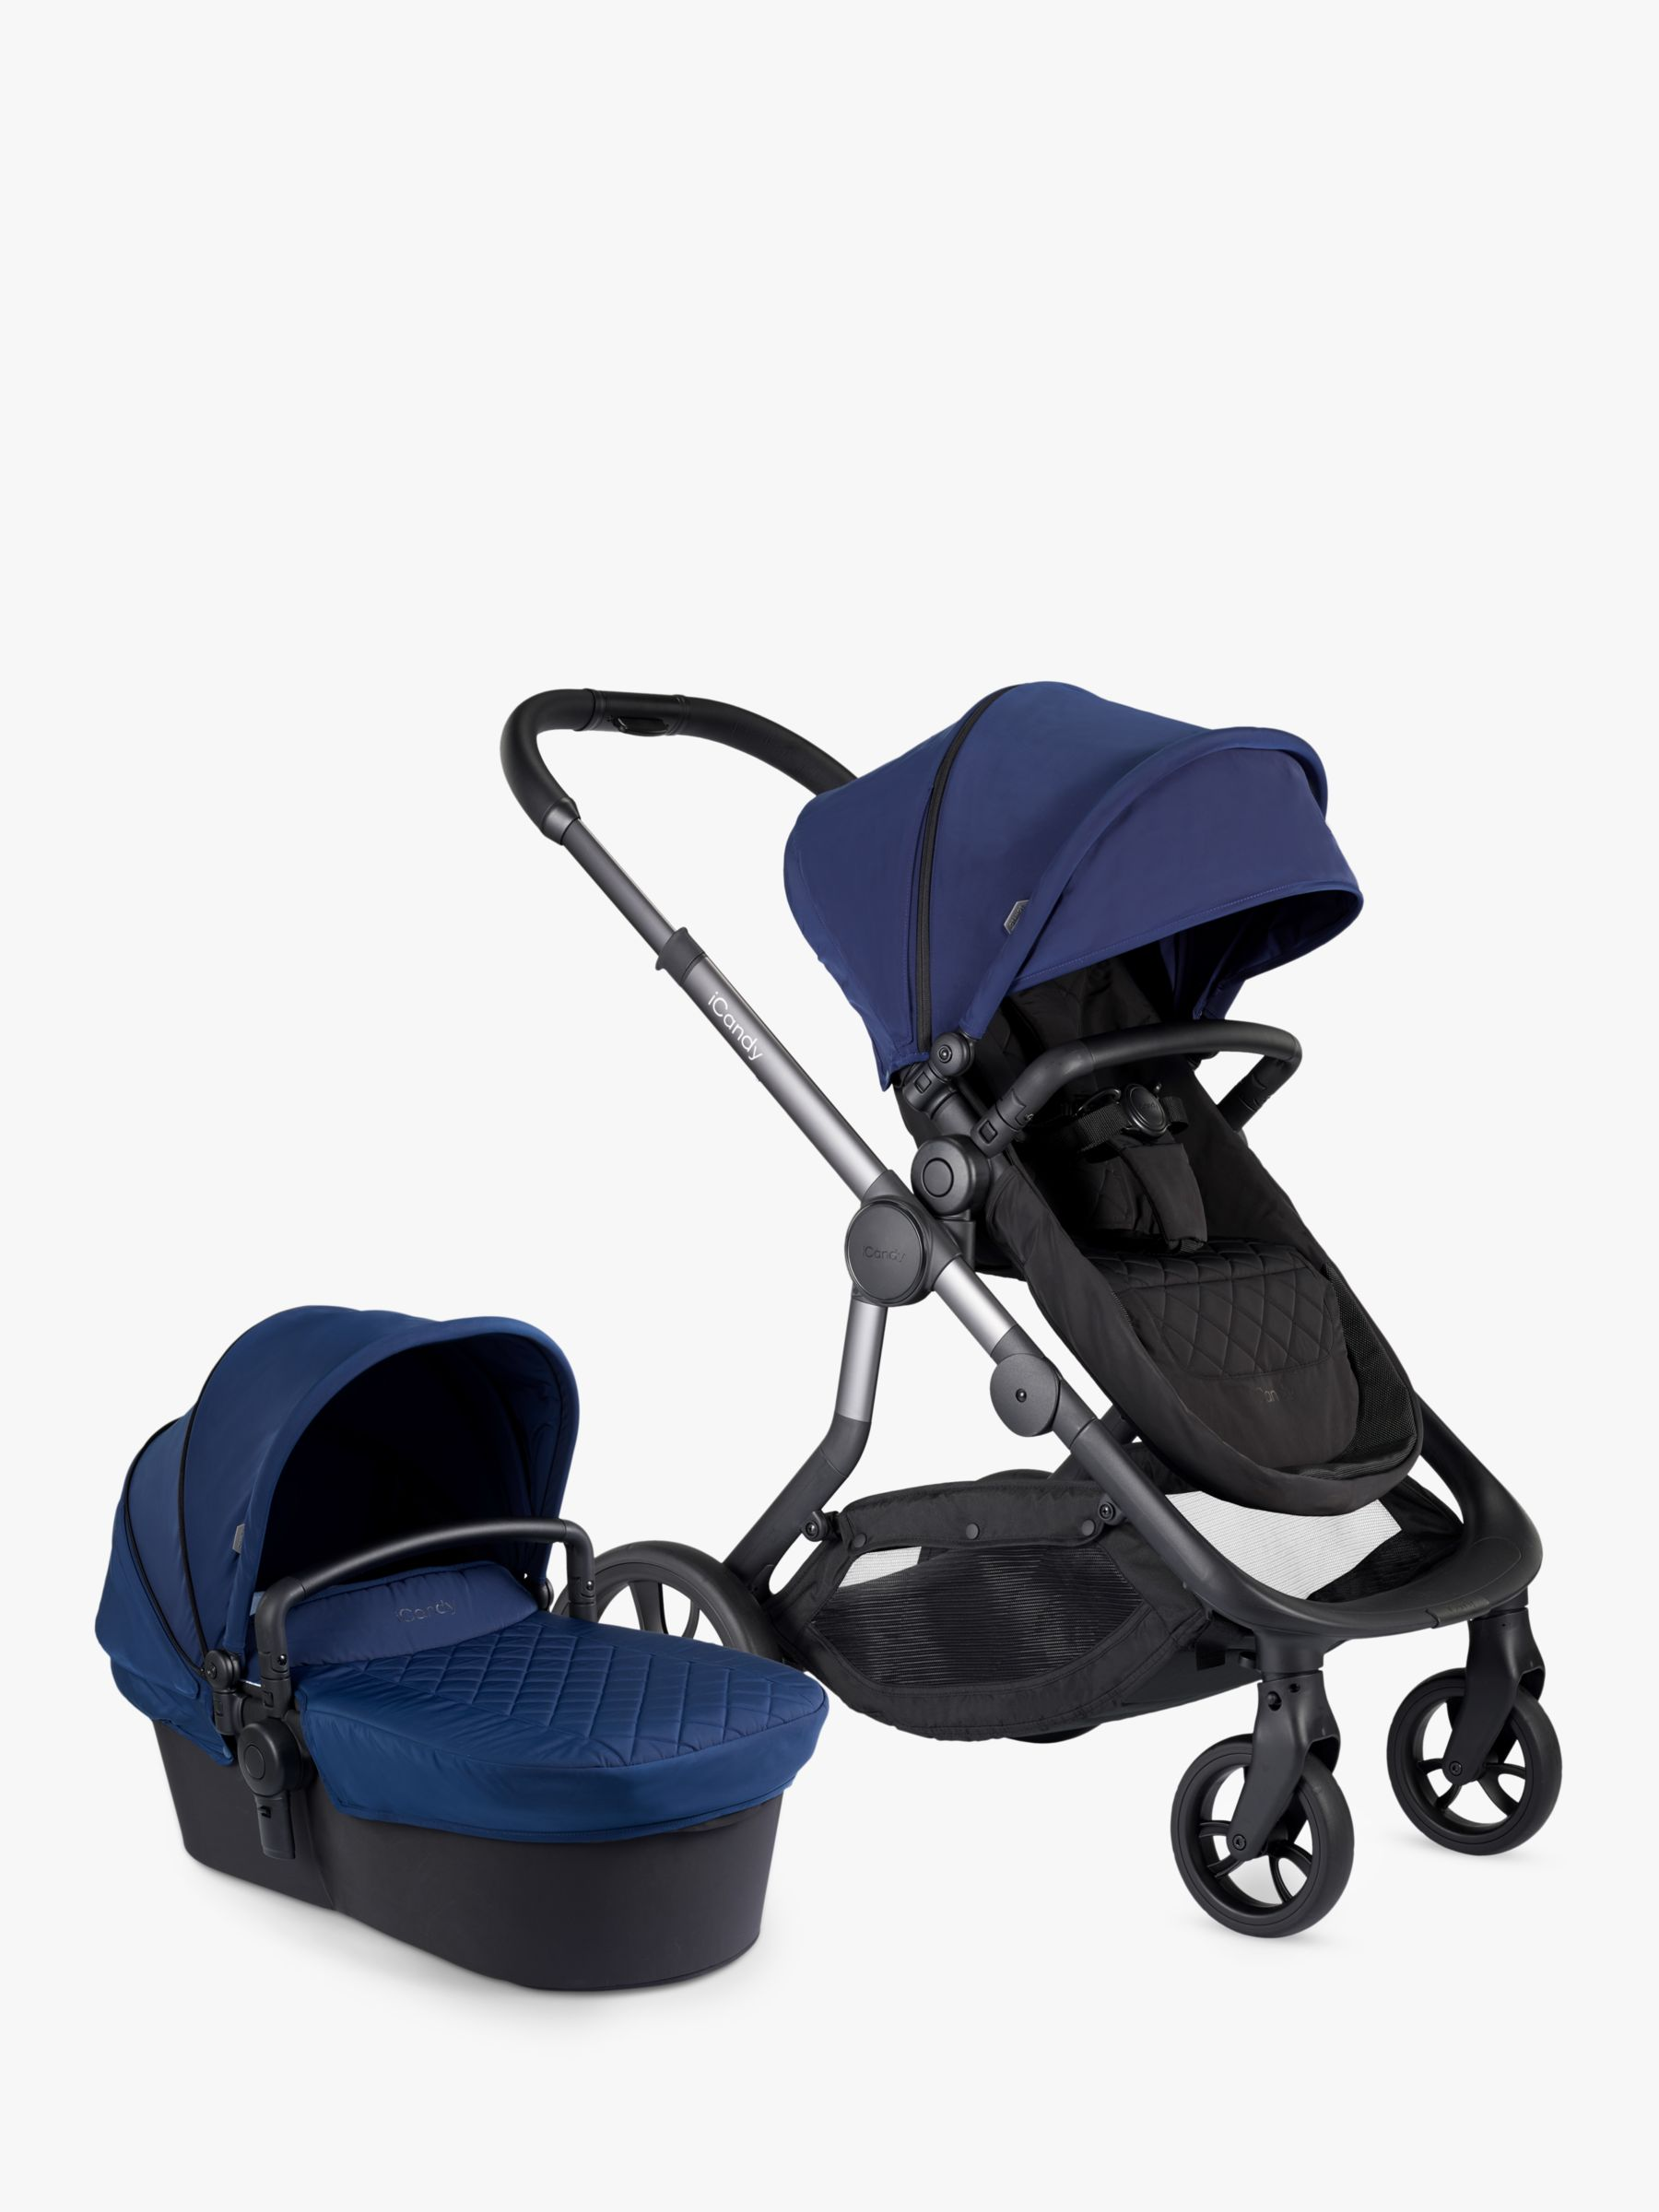 iCandy iCandy Orange Pushchair and Carrycot, Indigo